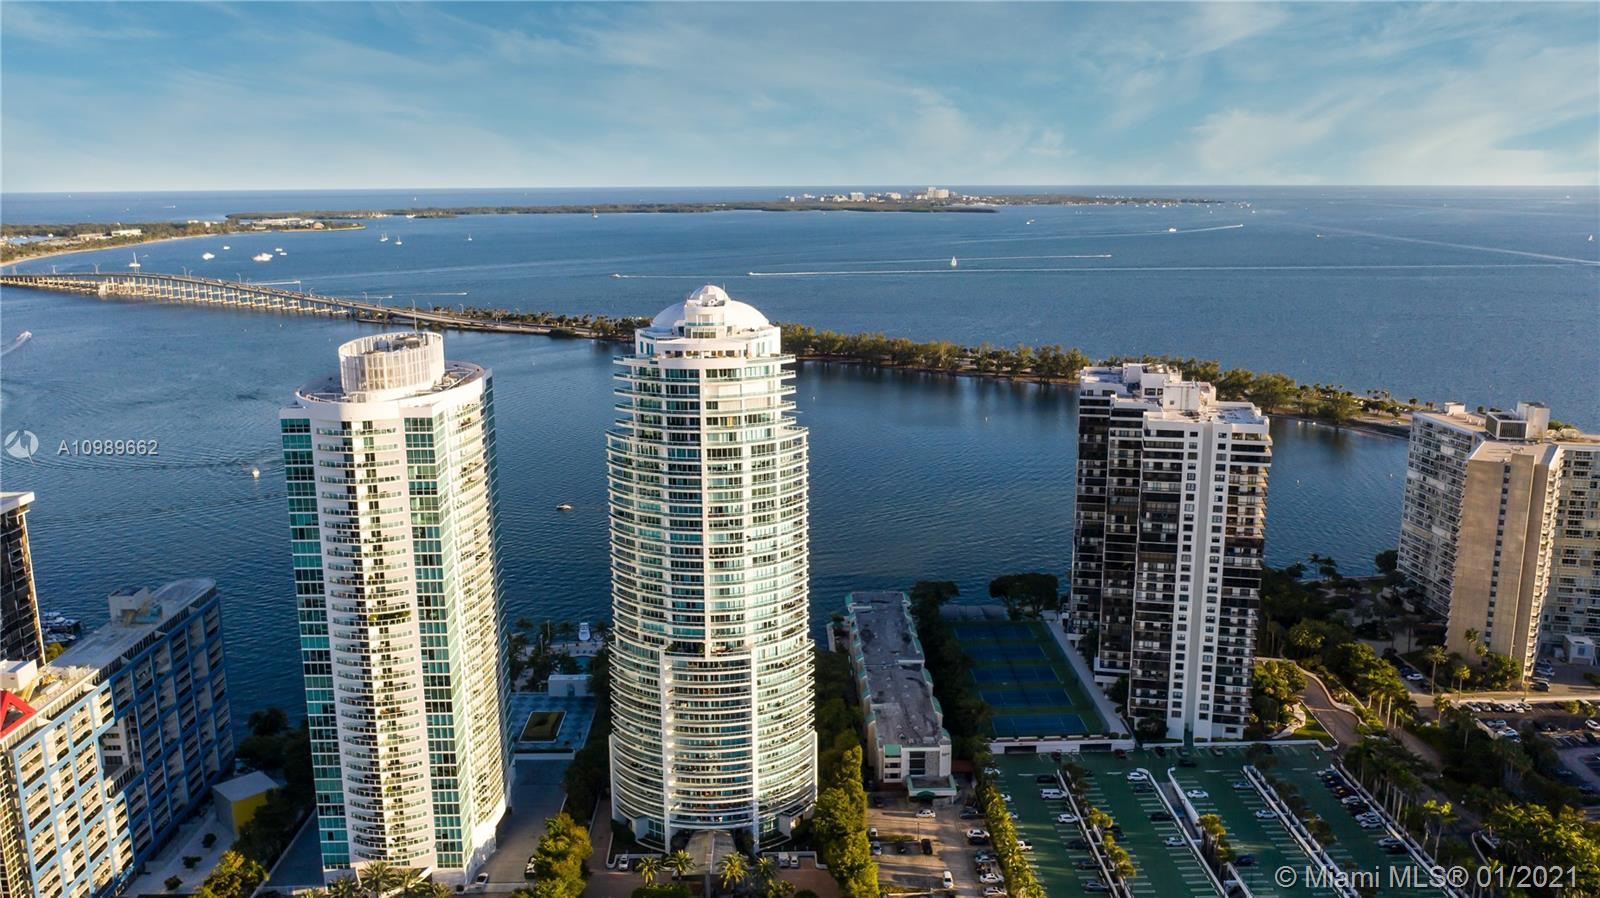 IMPRESSIVE 2310 SQFT 3 BEDROOMS/3BATHROOMS APARTMENT IN THE PRESTIGIOUS BRISTOL TOWER. Remodeled. Grand living spaces with impressive floor to ceiling glass walls. Extensive balcony wraps around offering panoramic view of the City, Ocean, and Key Biscayne. Gourmet island kitchen. Private elevator entry. Amenities include: Tennis court, pool, spa, gym, convenience store, free valet, 24 Hour security. MODERN & CONTEMPORARY STYLE - PREMIUM APPLIANCES. 2 parking spaces. Easy access to i-95, Premium shops and Restaurants, Coconut Grove, Key Biscayne, Brickell, Downtown, etc. This is a unique opportunity for an outstanding lifestyle. BRING YOUR OFFERS!